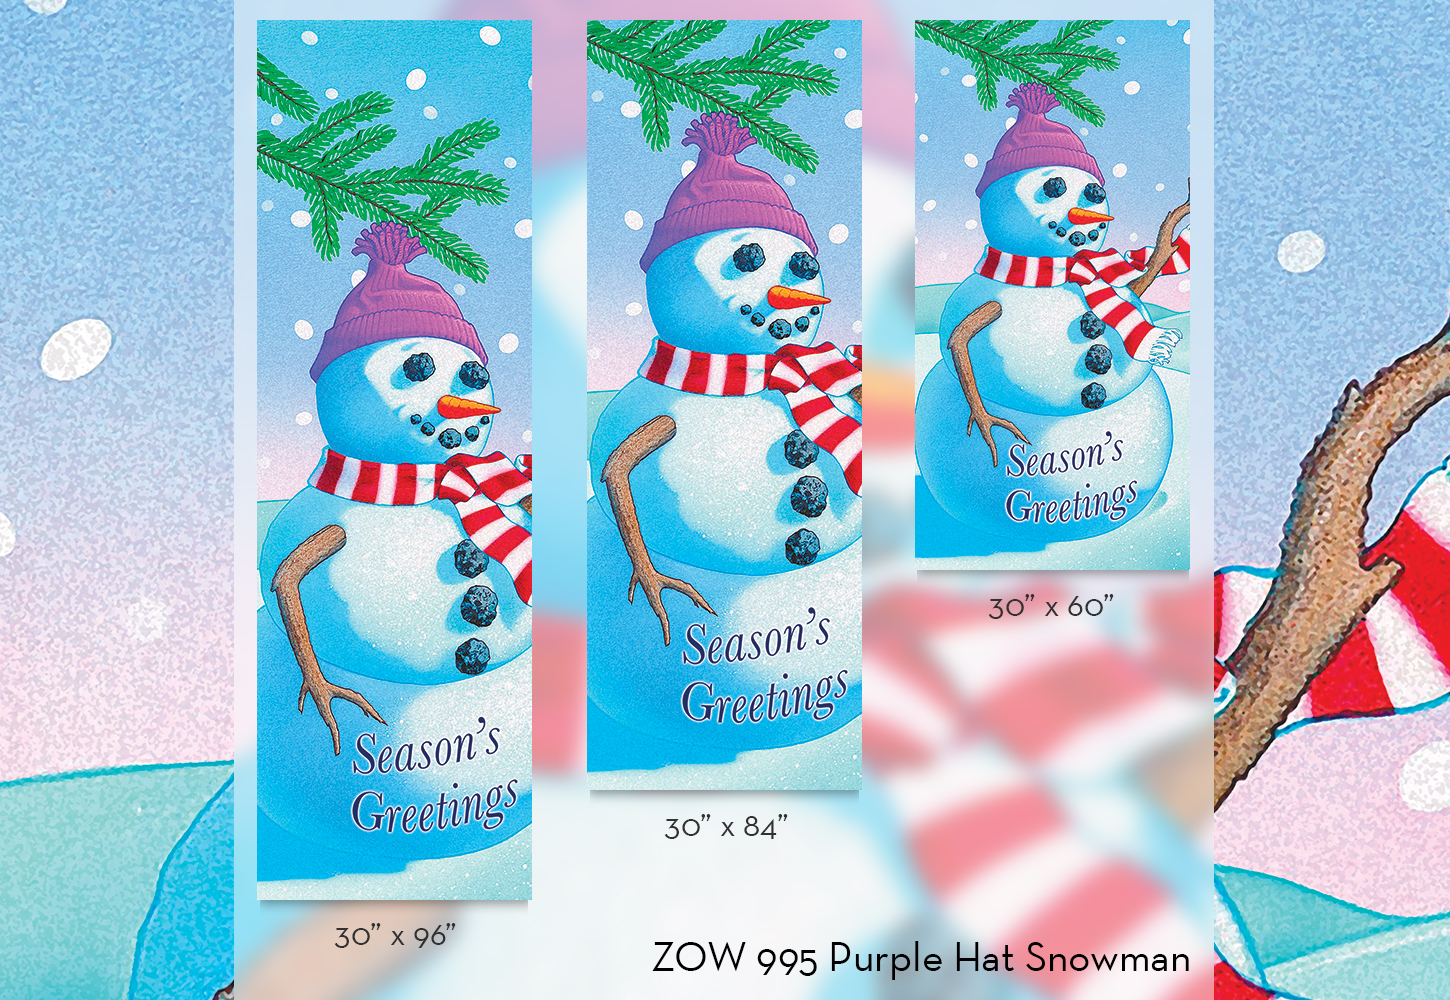 ZOW 995 Purple Hat Snowman